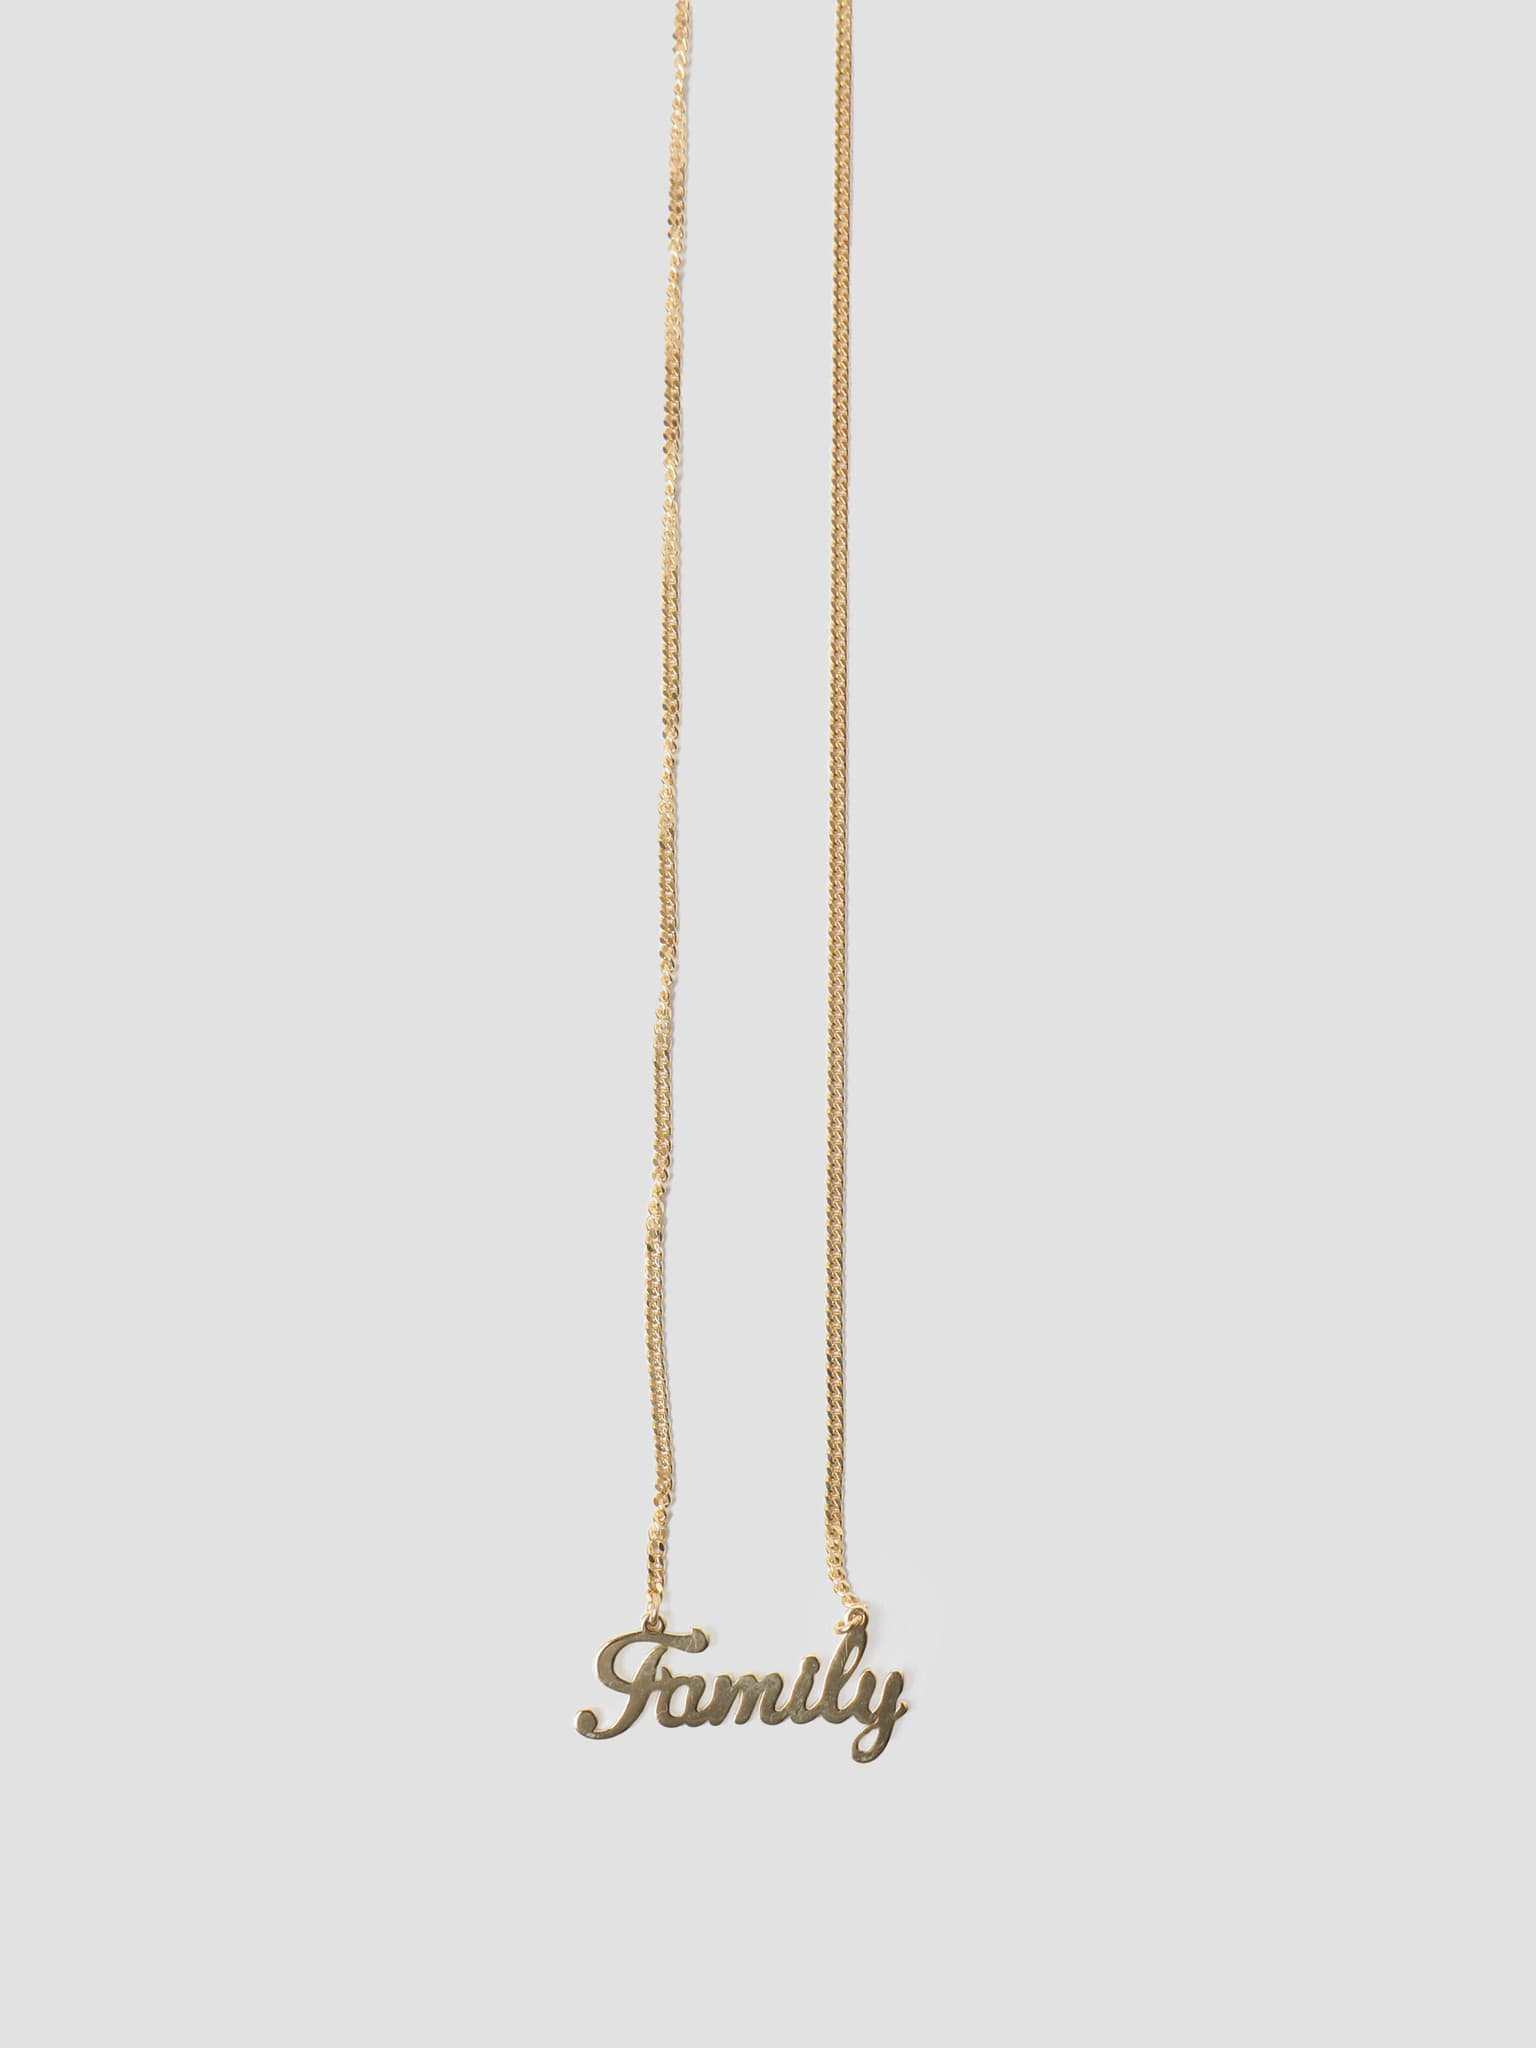 by Freshcotton Family Necklace 55cm 14K Gold Plated